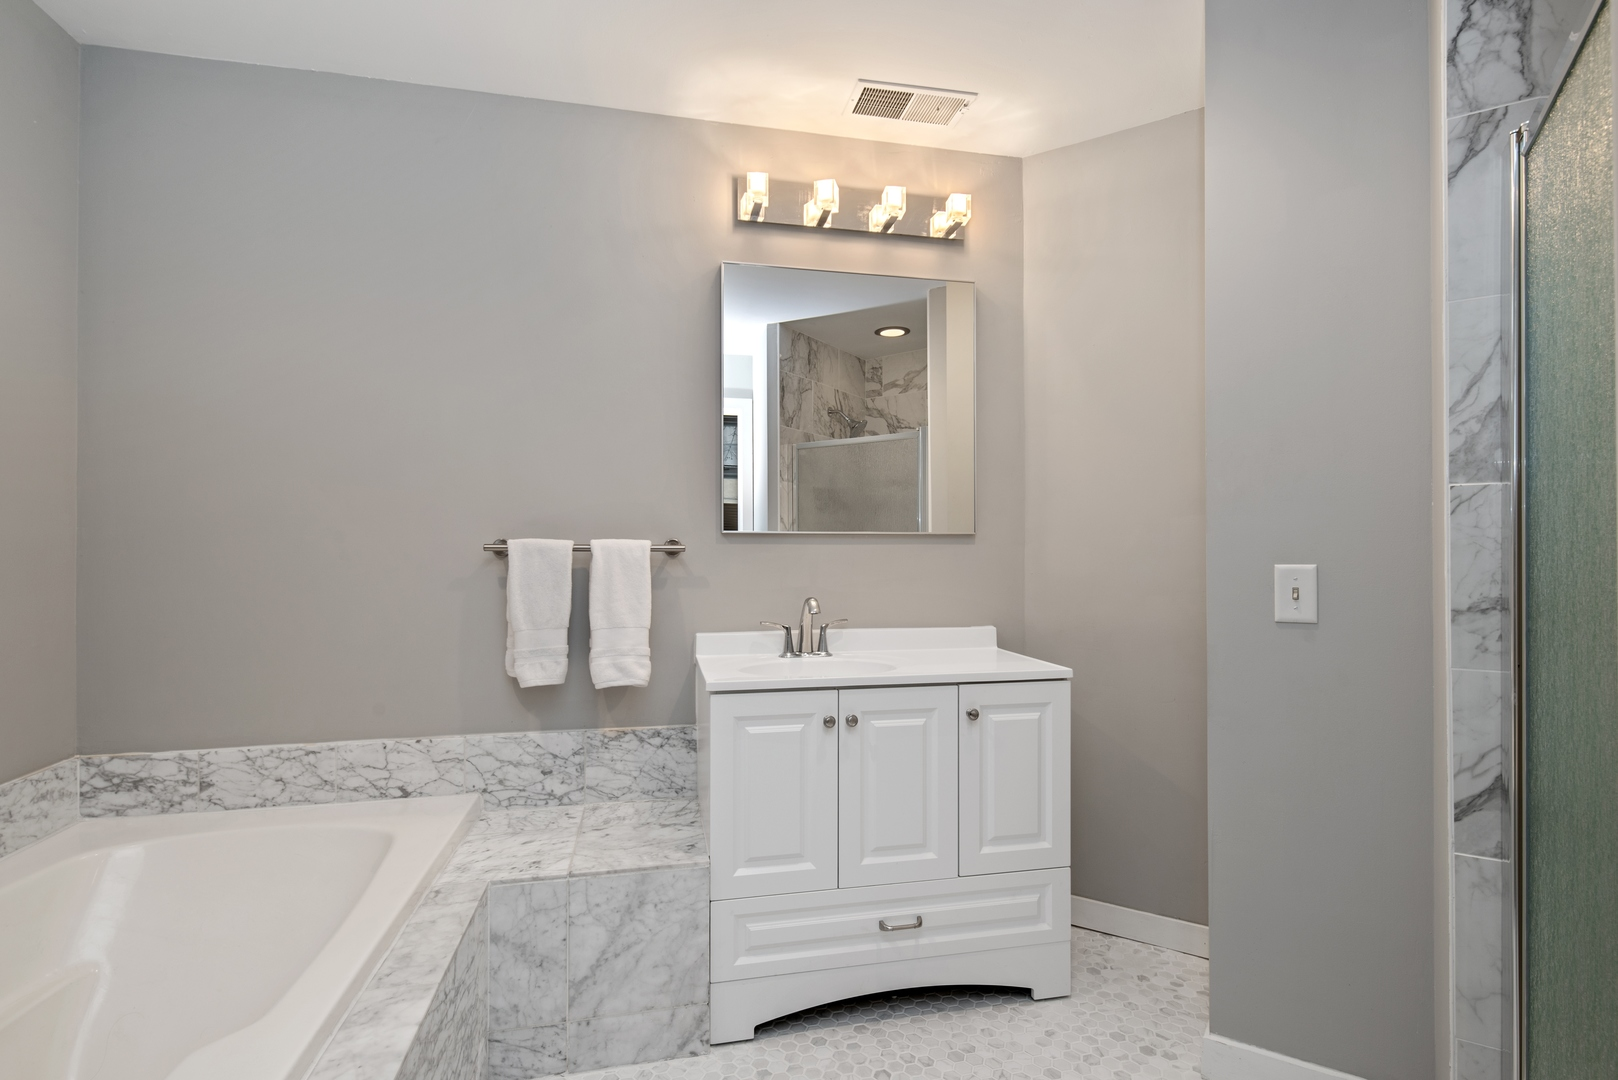 Hd 1582735759266 12 2100nracine1c 13 masterbathroom hires